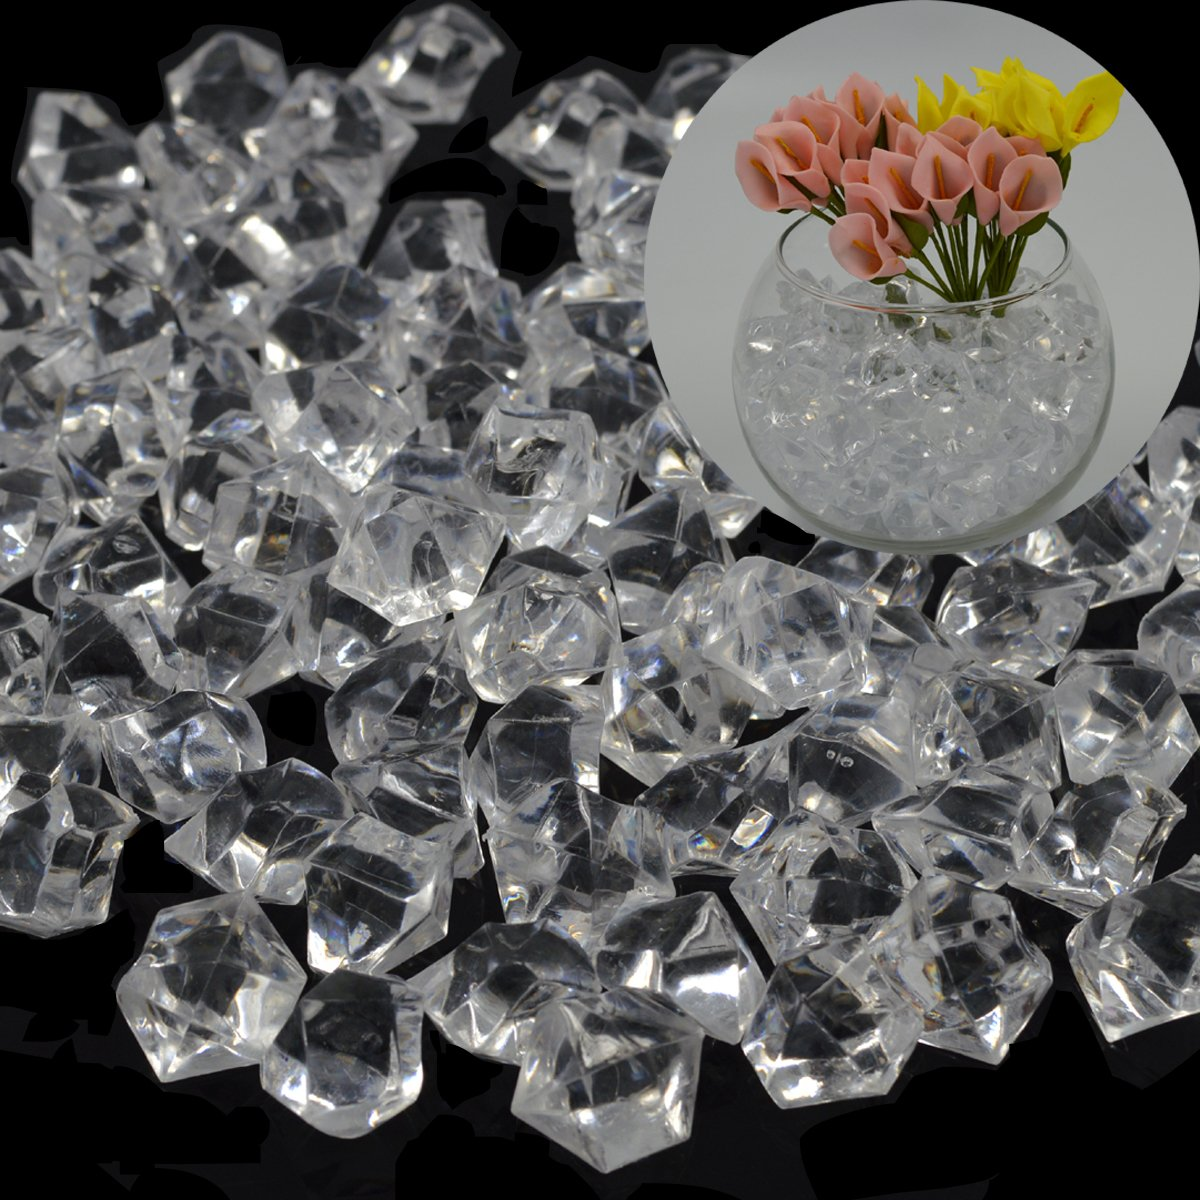 Metable 200 Pcs 1 Inch Clear Acrylic Ice Rocks Crystal Scatter Gems For Aquariums Vase Filler Home Office Table Decoration Kids Toys Wedding Party Favors